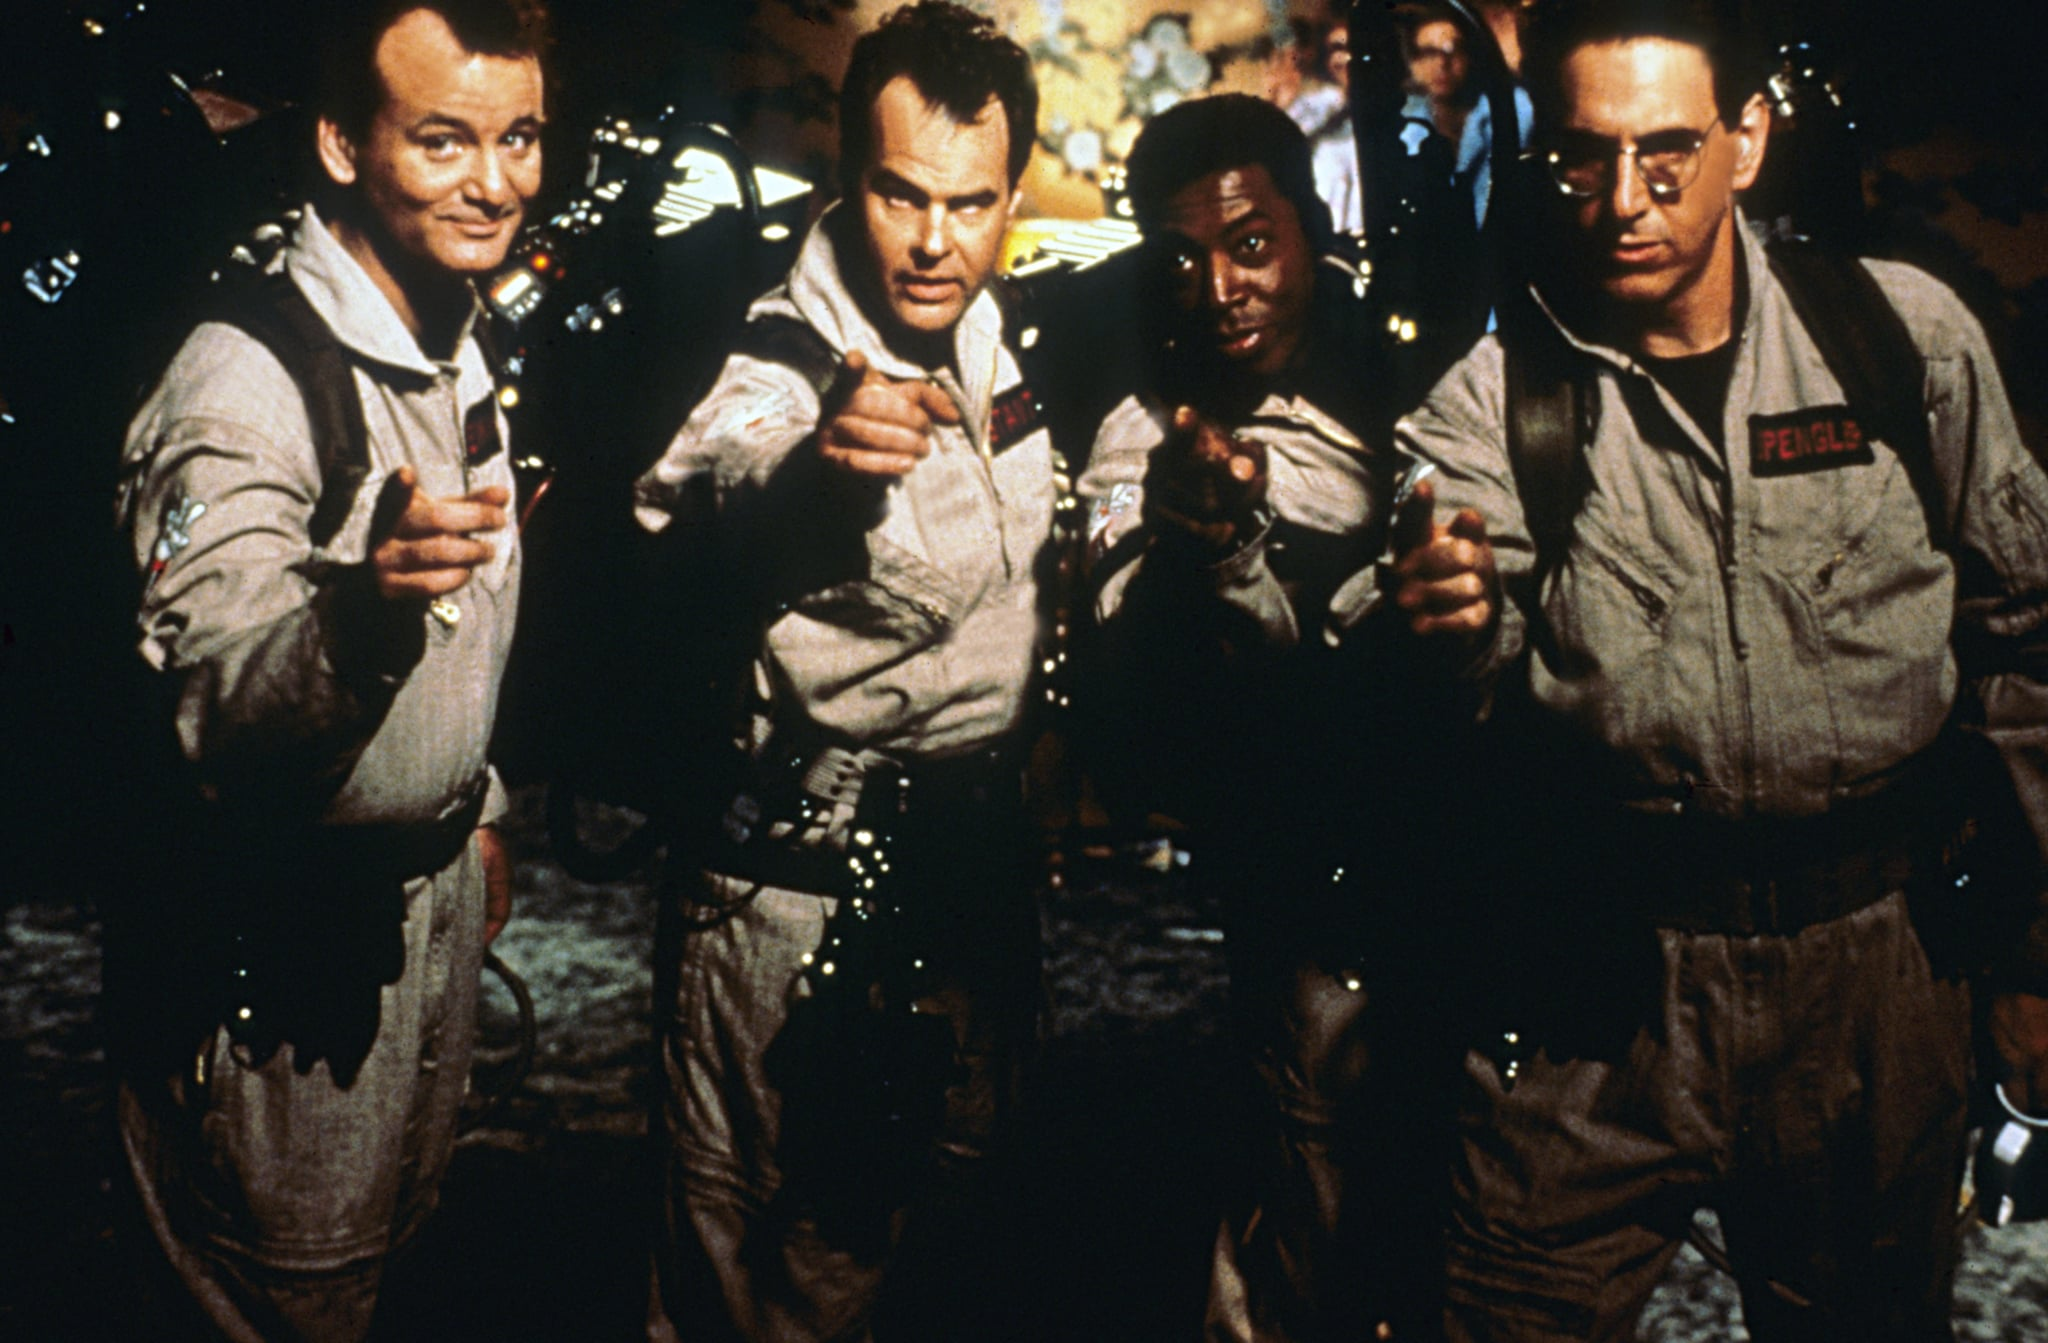 Ghostbusters 1984 Best Halloween Movies Ranked From Least To Most Scary Popsugar Entertainment Uk Photo 3